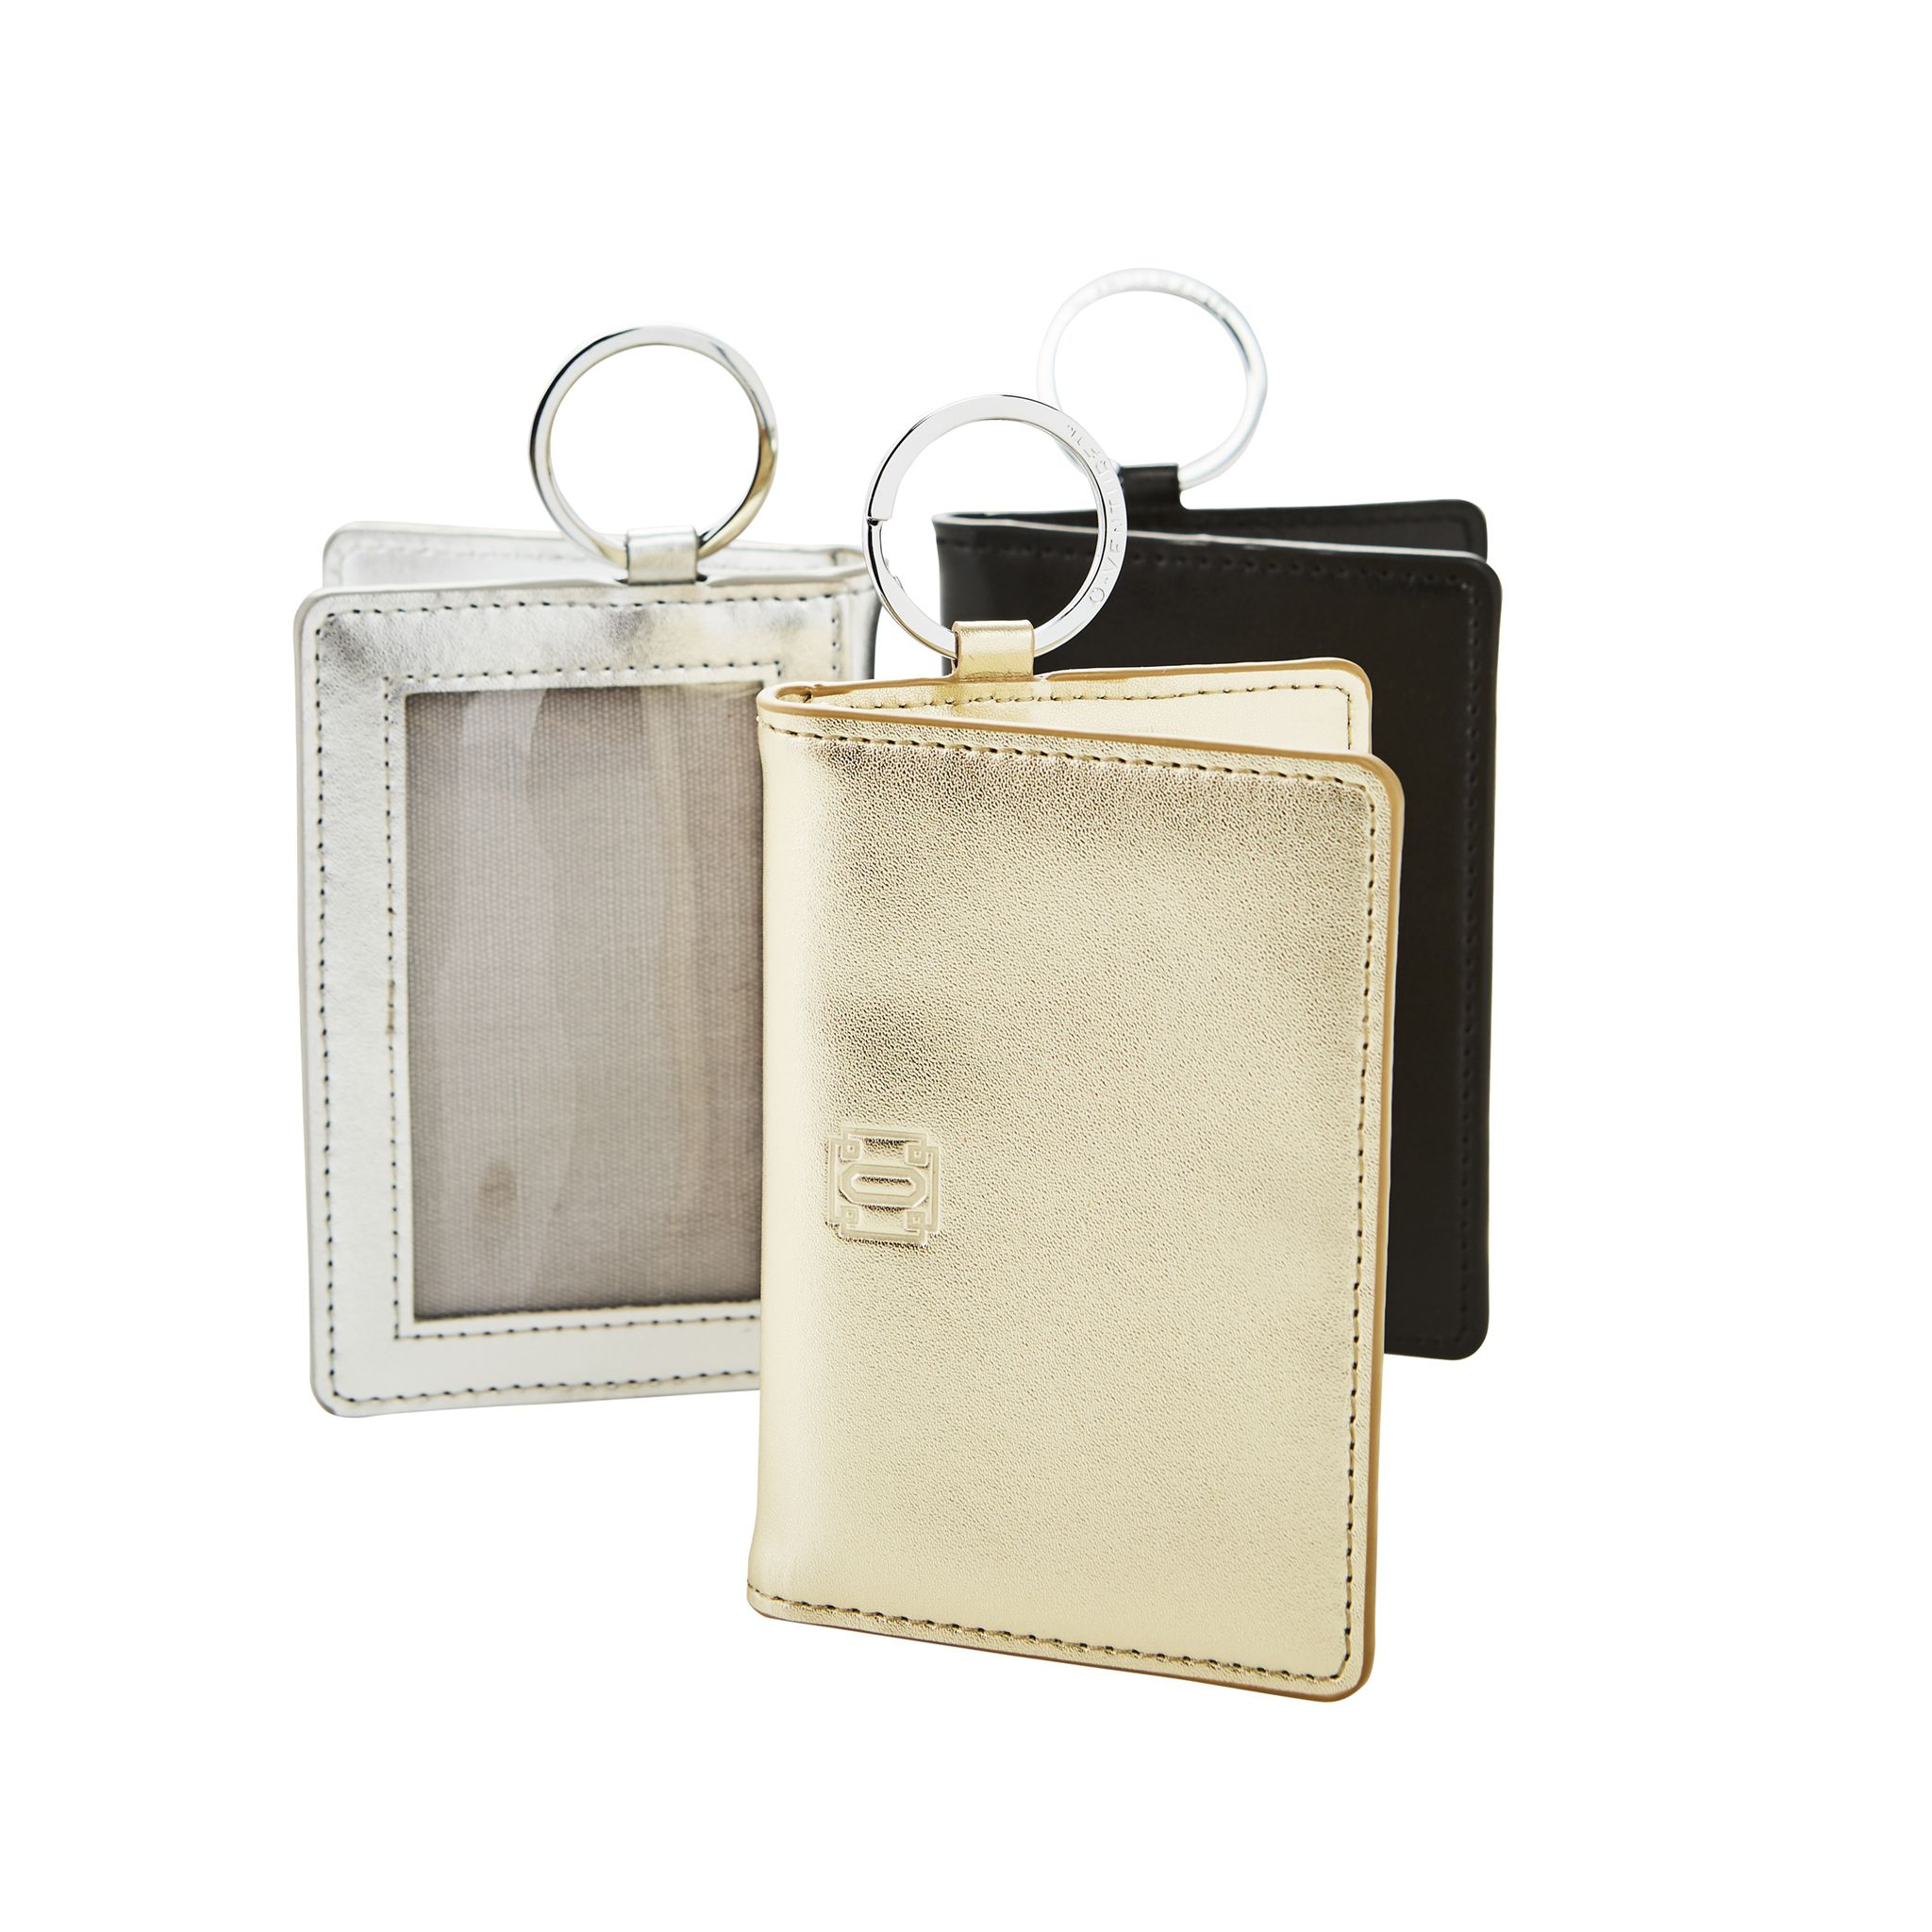 d907647f54ec Ossential card cases / ID CASE in gOld rush - Easily hOOks up with the Big O  Key Ring or can stand alOne as your key ring.